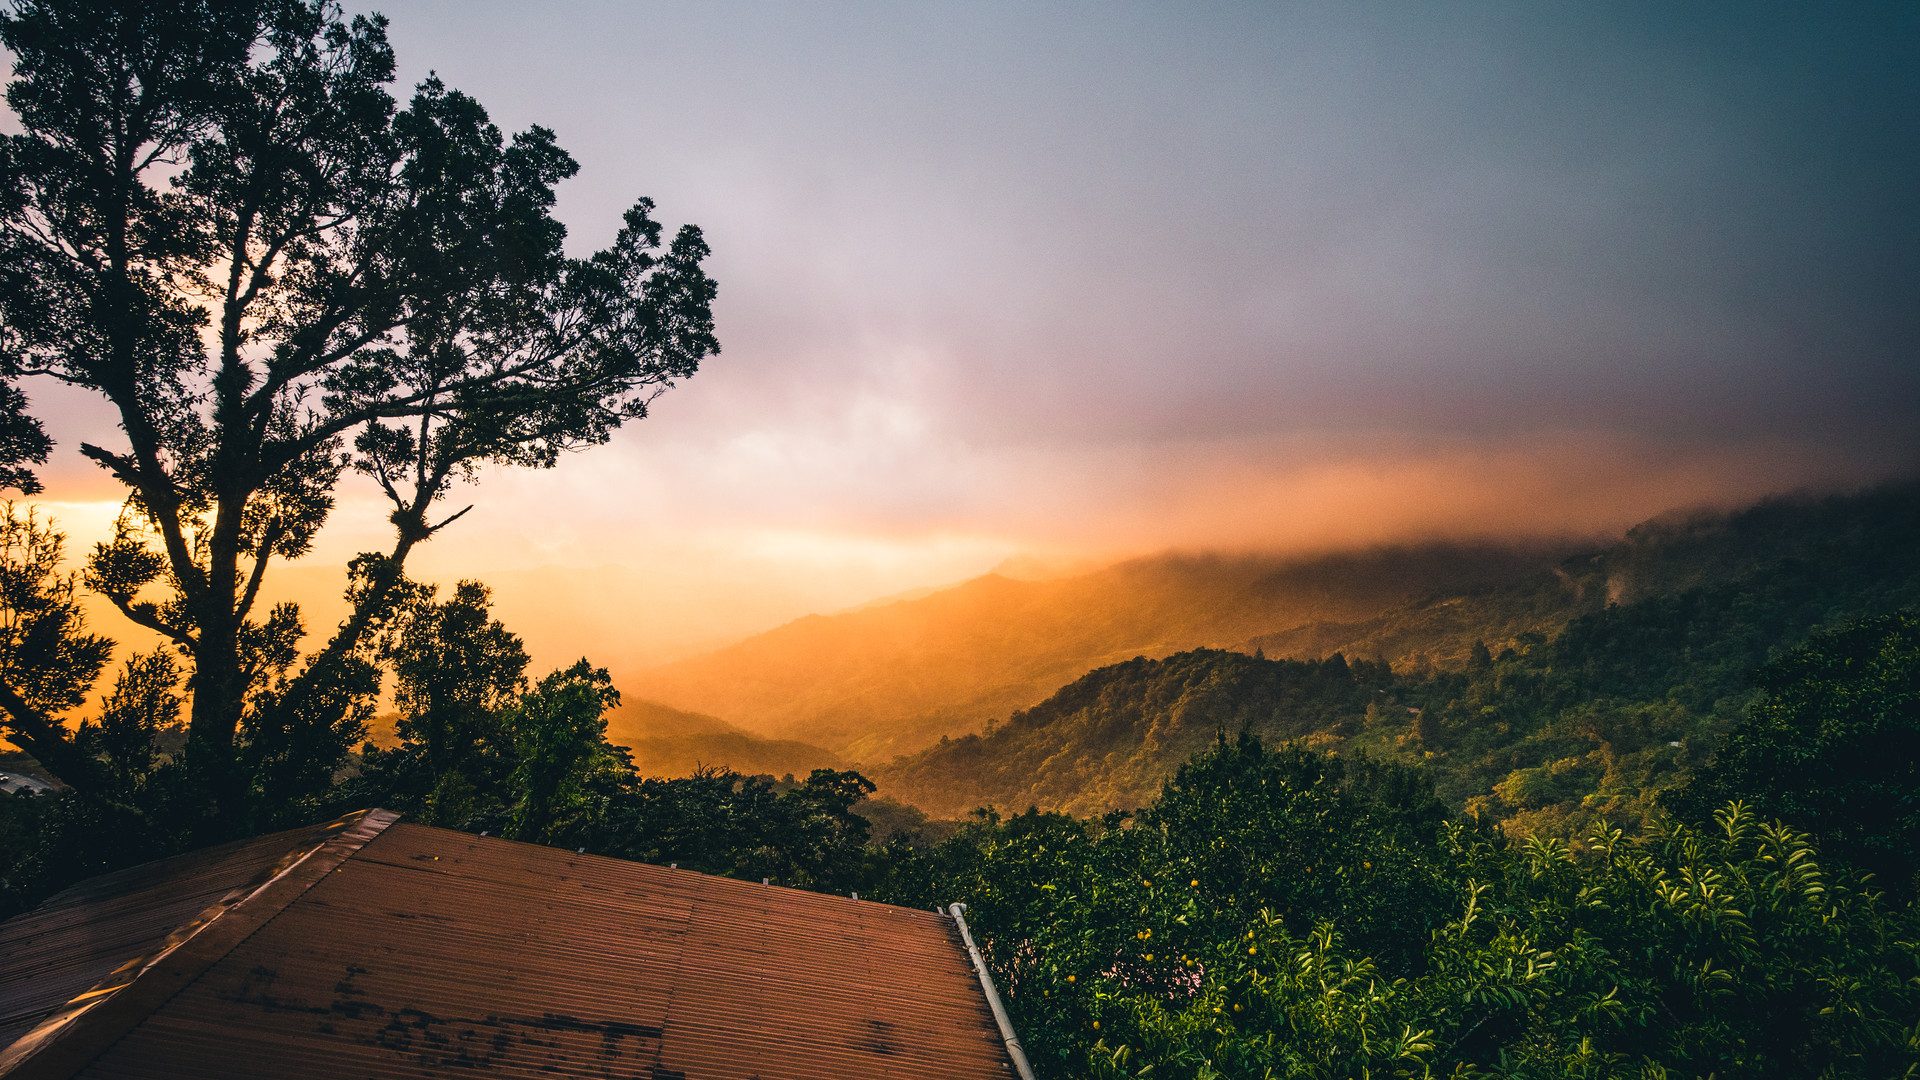 Orange sunset in the mountain forest of Panama